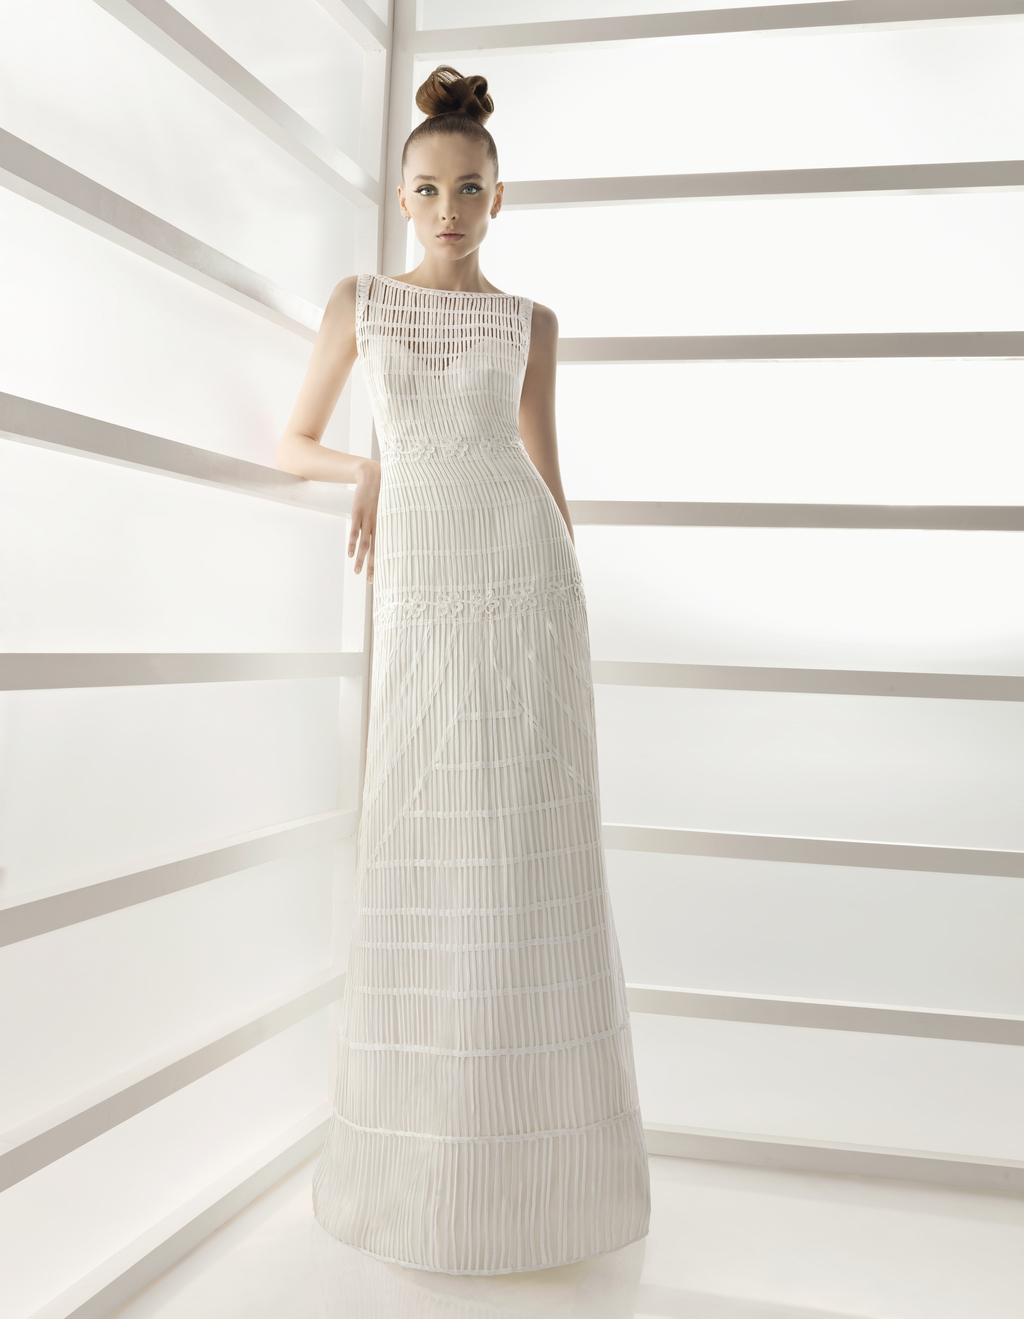 221-elche-2011-wedding-dress-rosa-clara-bateua-neck-column.full